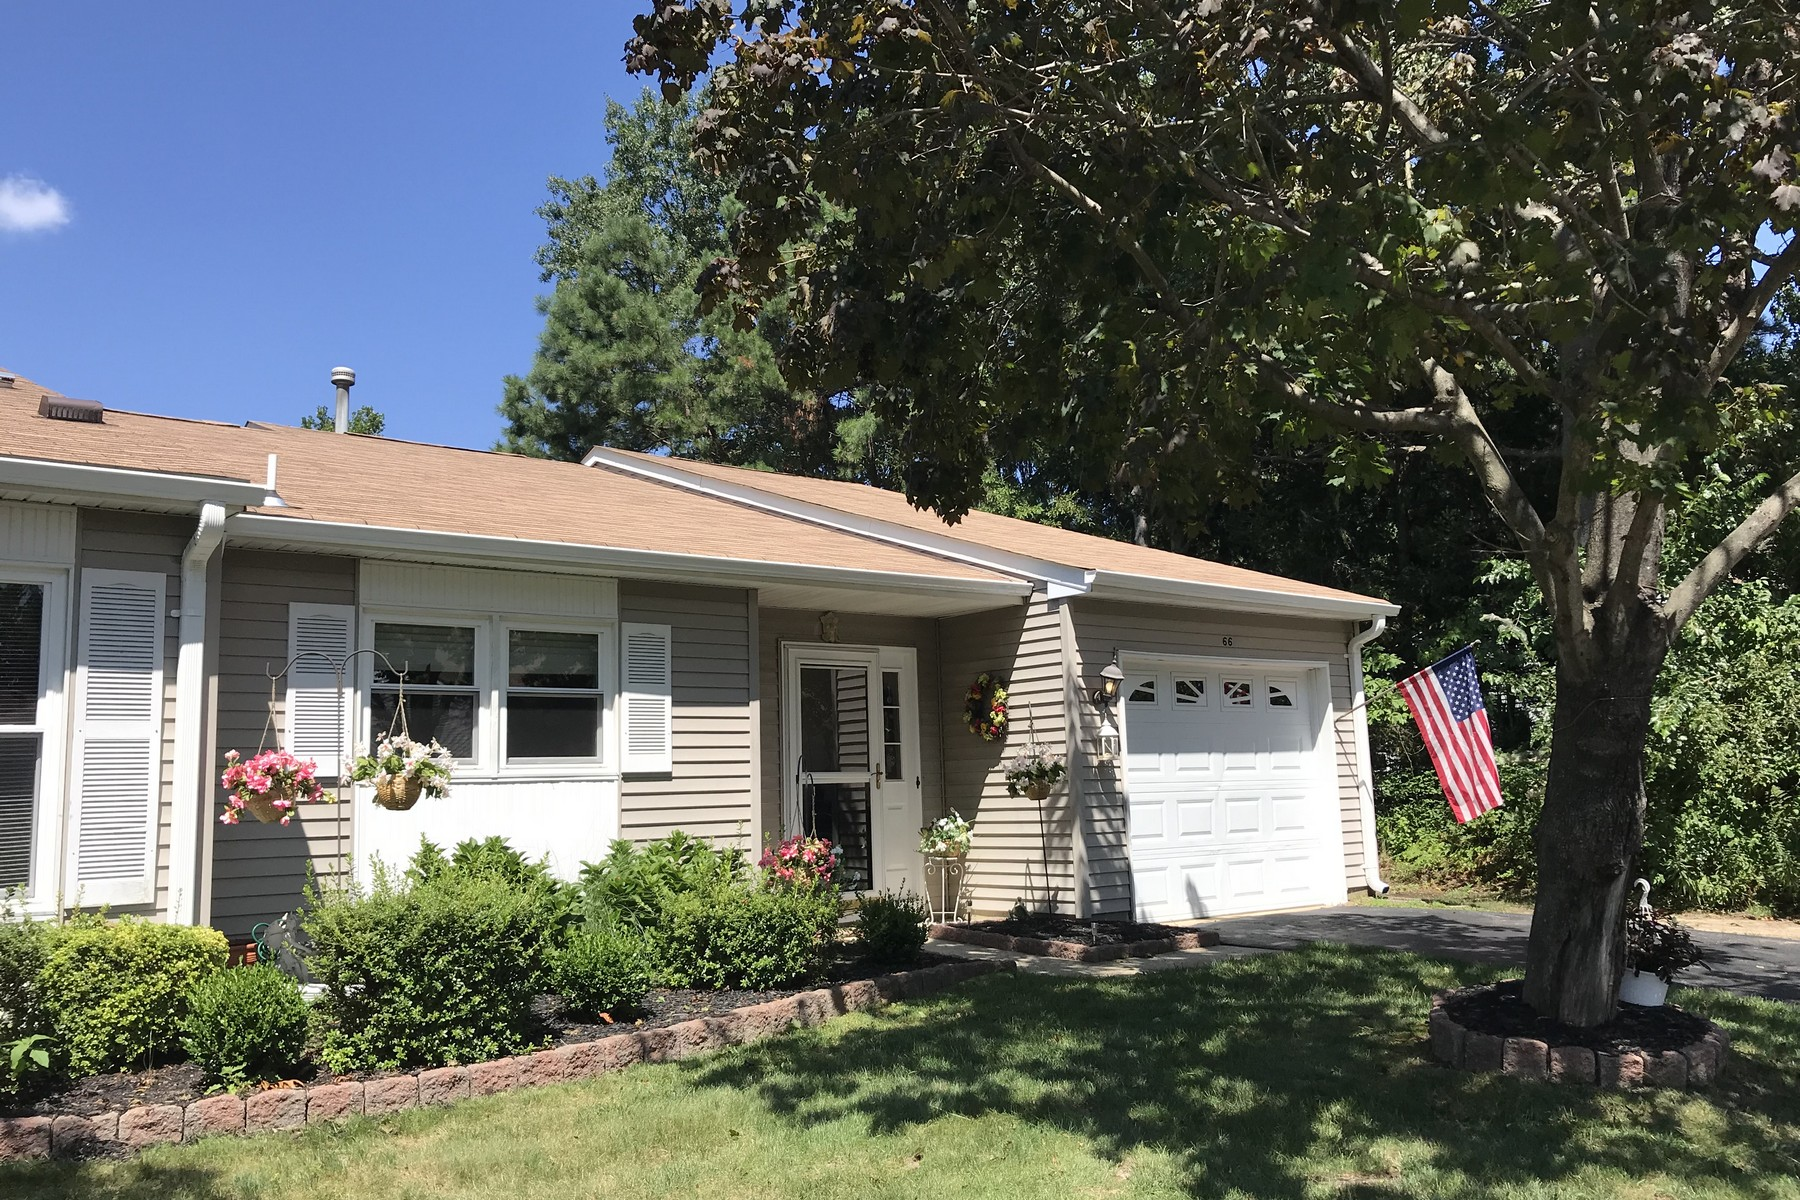 Single Family Home for Sale at LIVE HAPPY at LIONS HEAD WOODS 66 Jean St, Lakewood, New Jersey 08701 United States